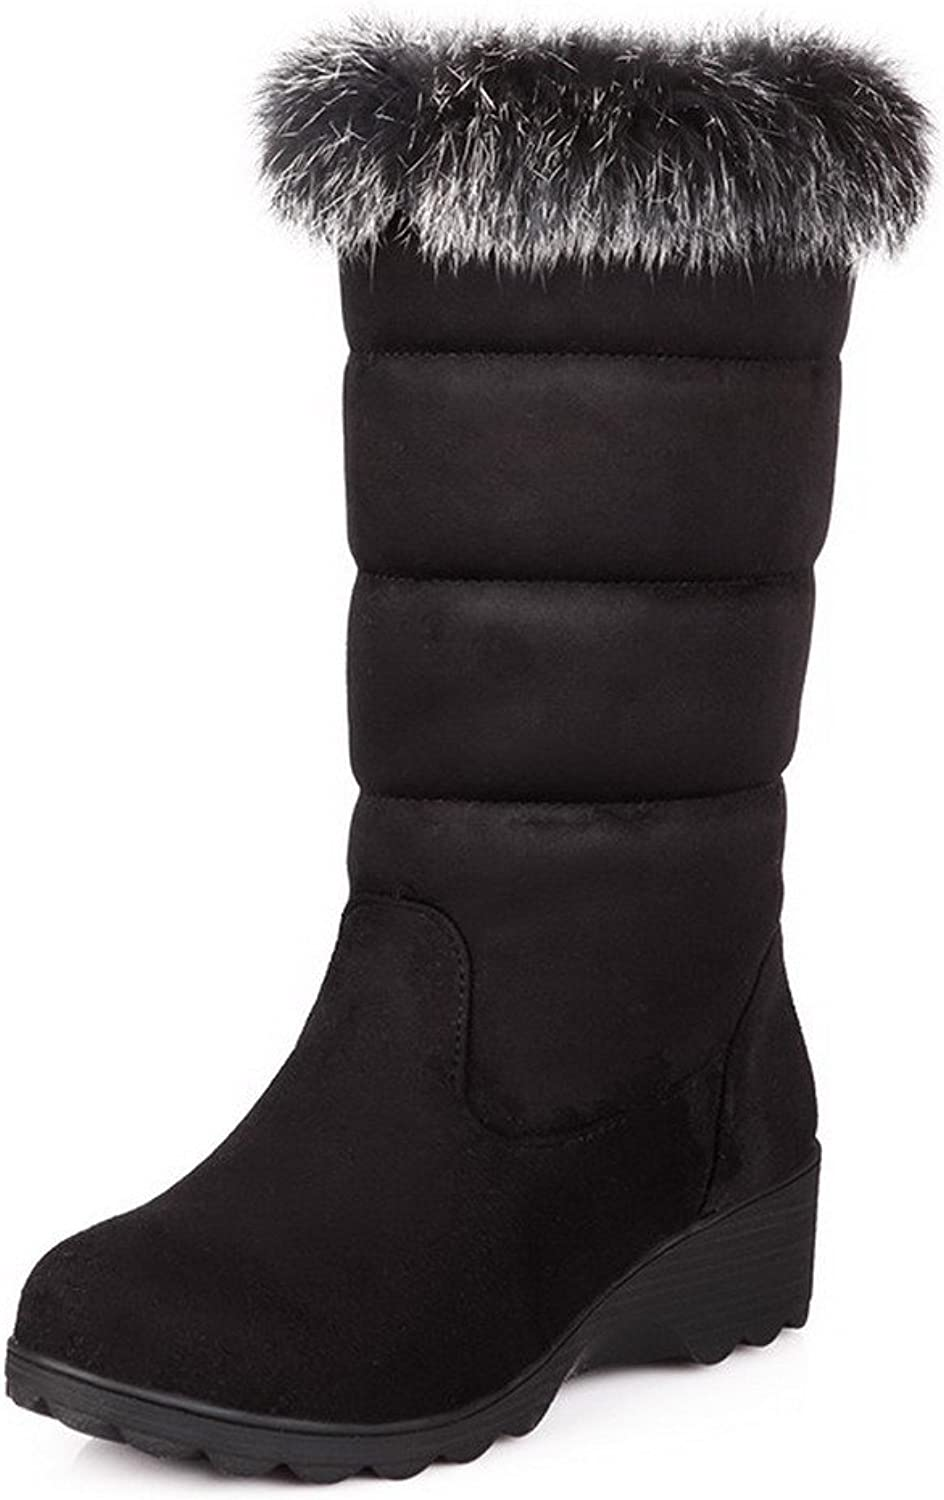 AmoonyFashion Womens Closed Round Toe Blend Materials PU Frost Short Plush Solid Boots with Flatform, Black, 7.5 B(M) US